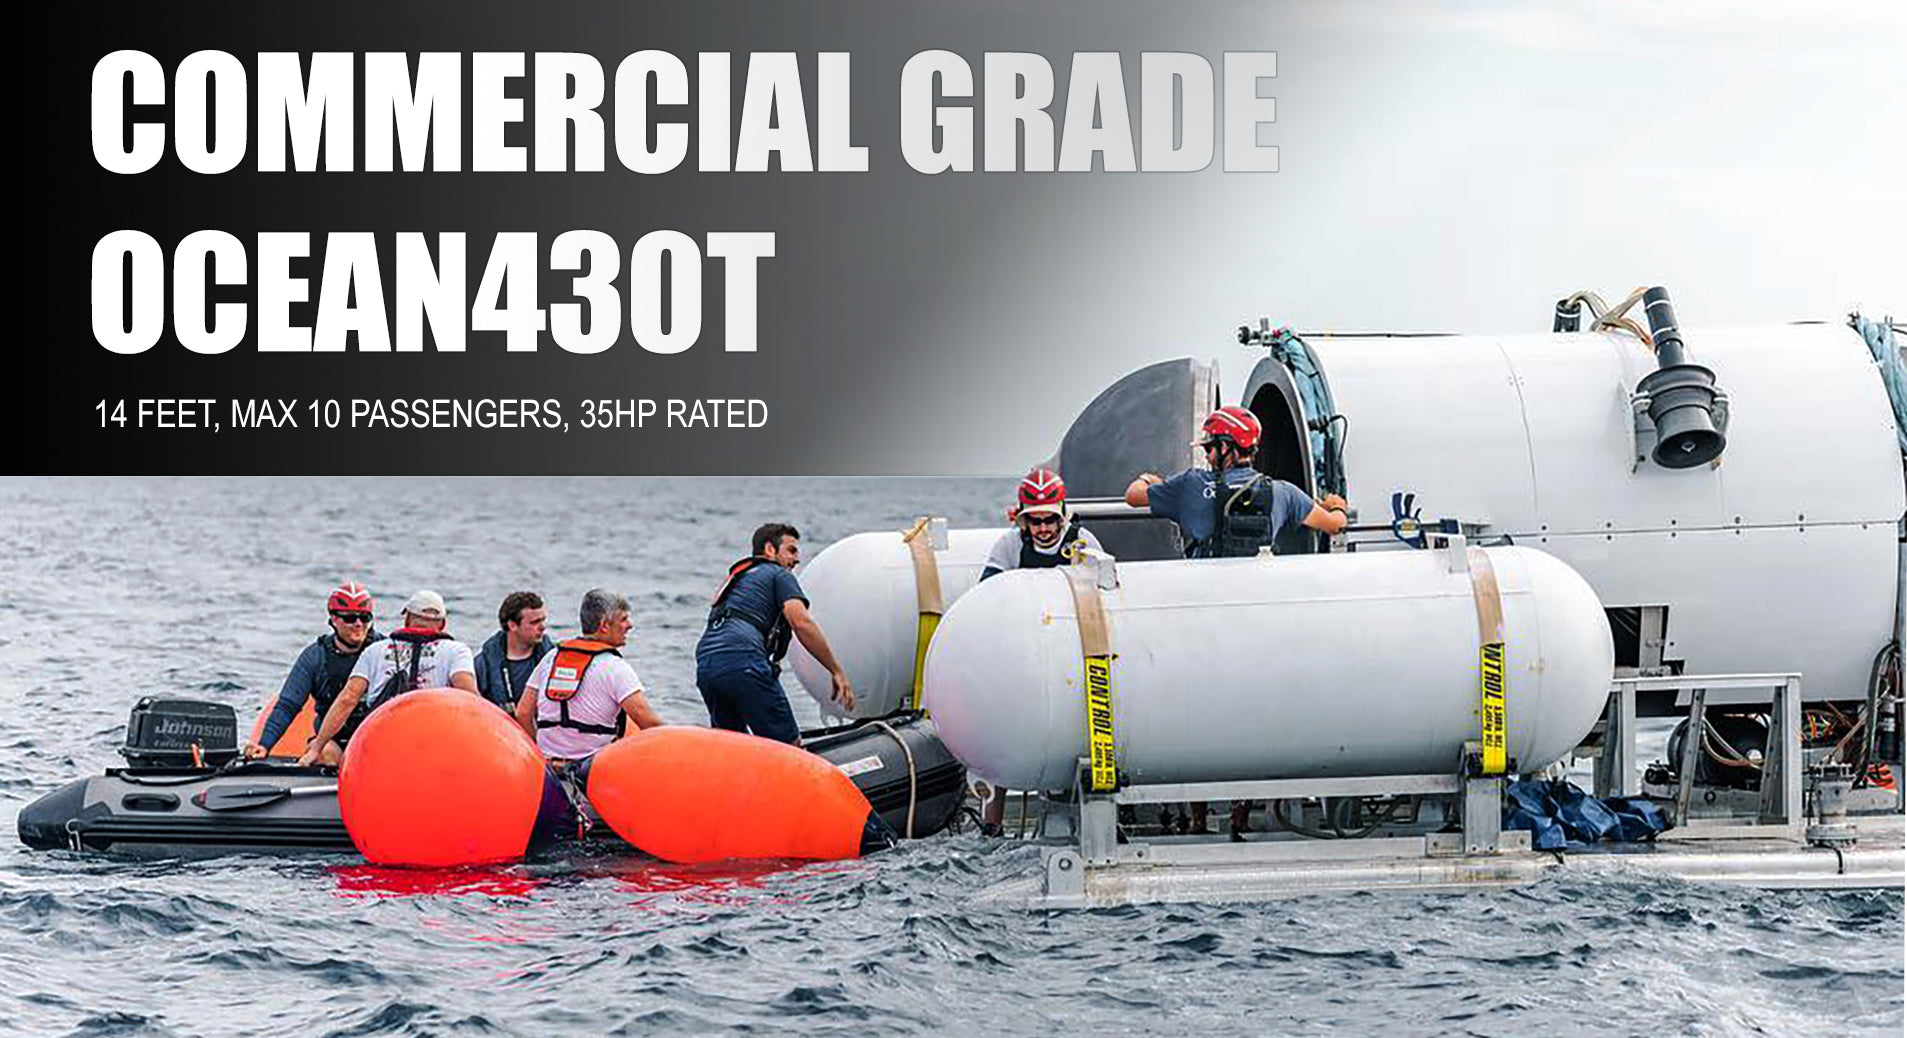 Seamax Ocean T Commercial Grade inflatable boat